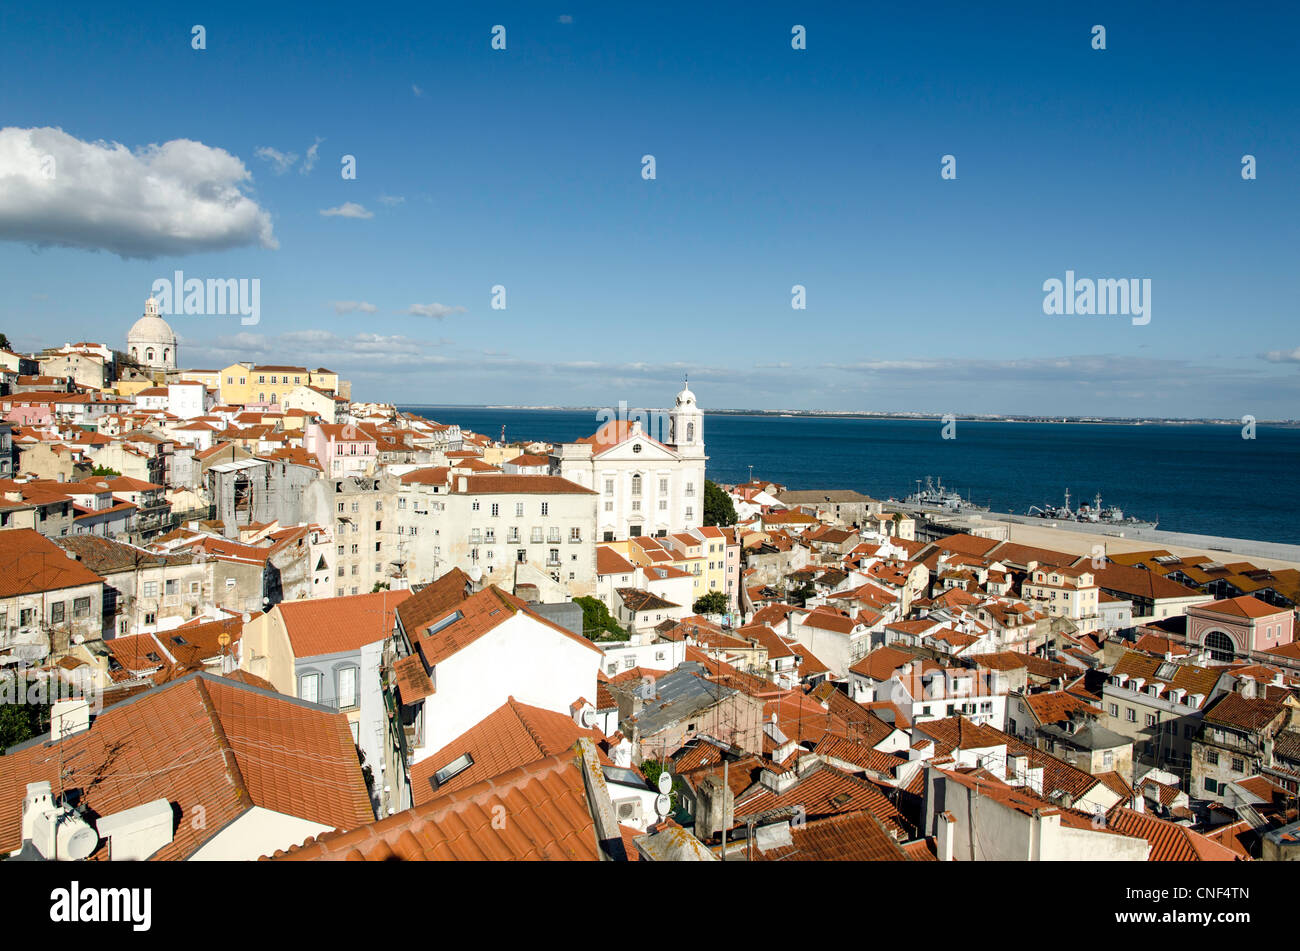 Alfama district Lisbon Portugal Europe - Stock Image